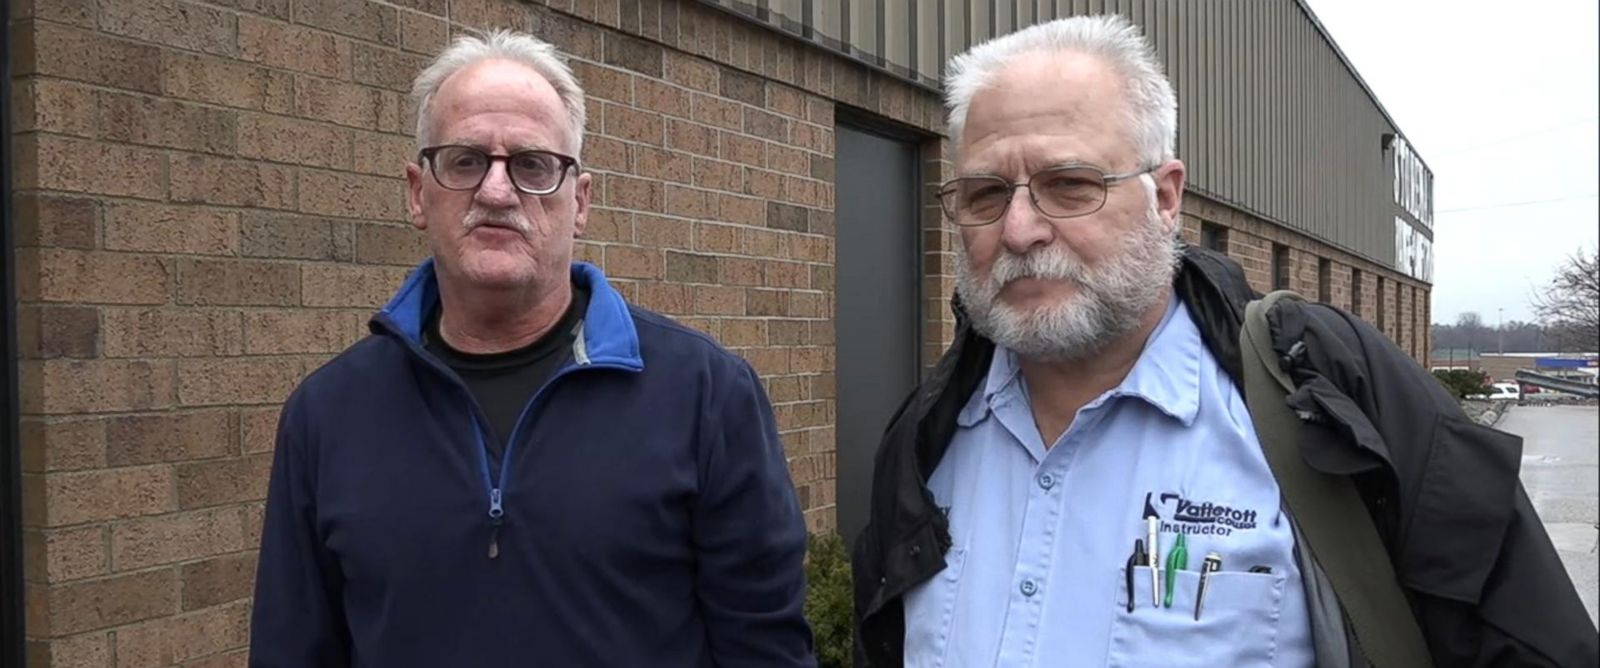 PHOTO: Ron Kuhn (left) and Terry Klein (right) are both college instructors in Ohio and think Trump will be good for the economy and jobs.